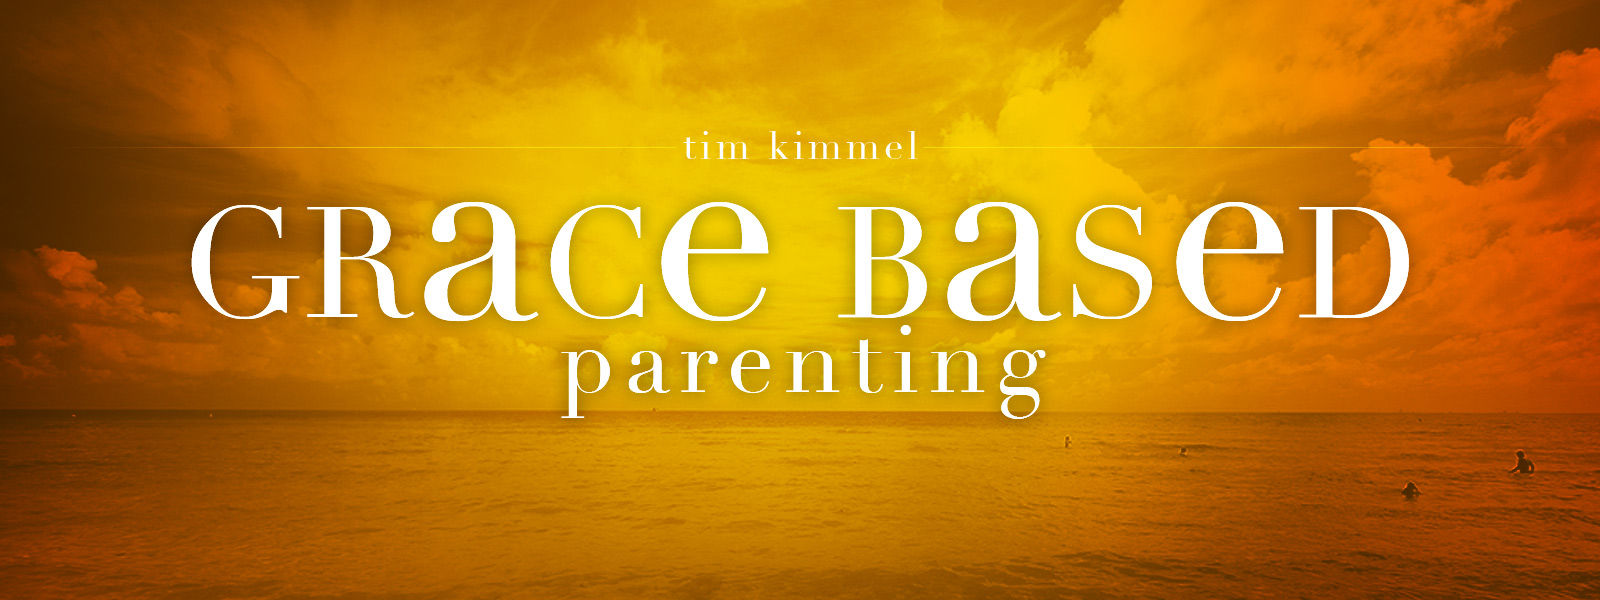 Grace Based Parenting 2 - Building Character